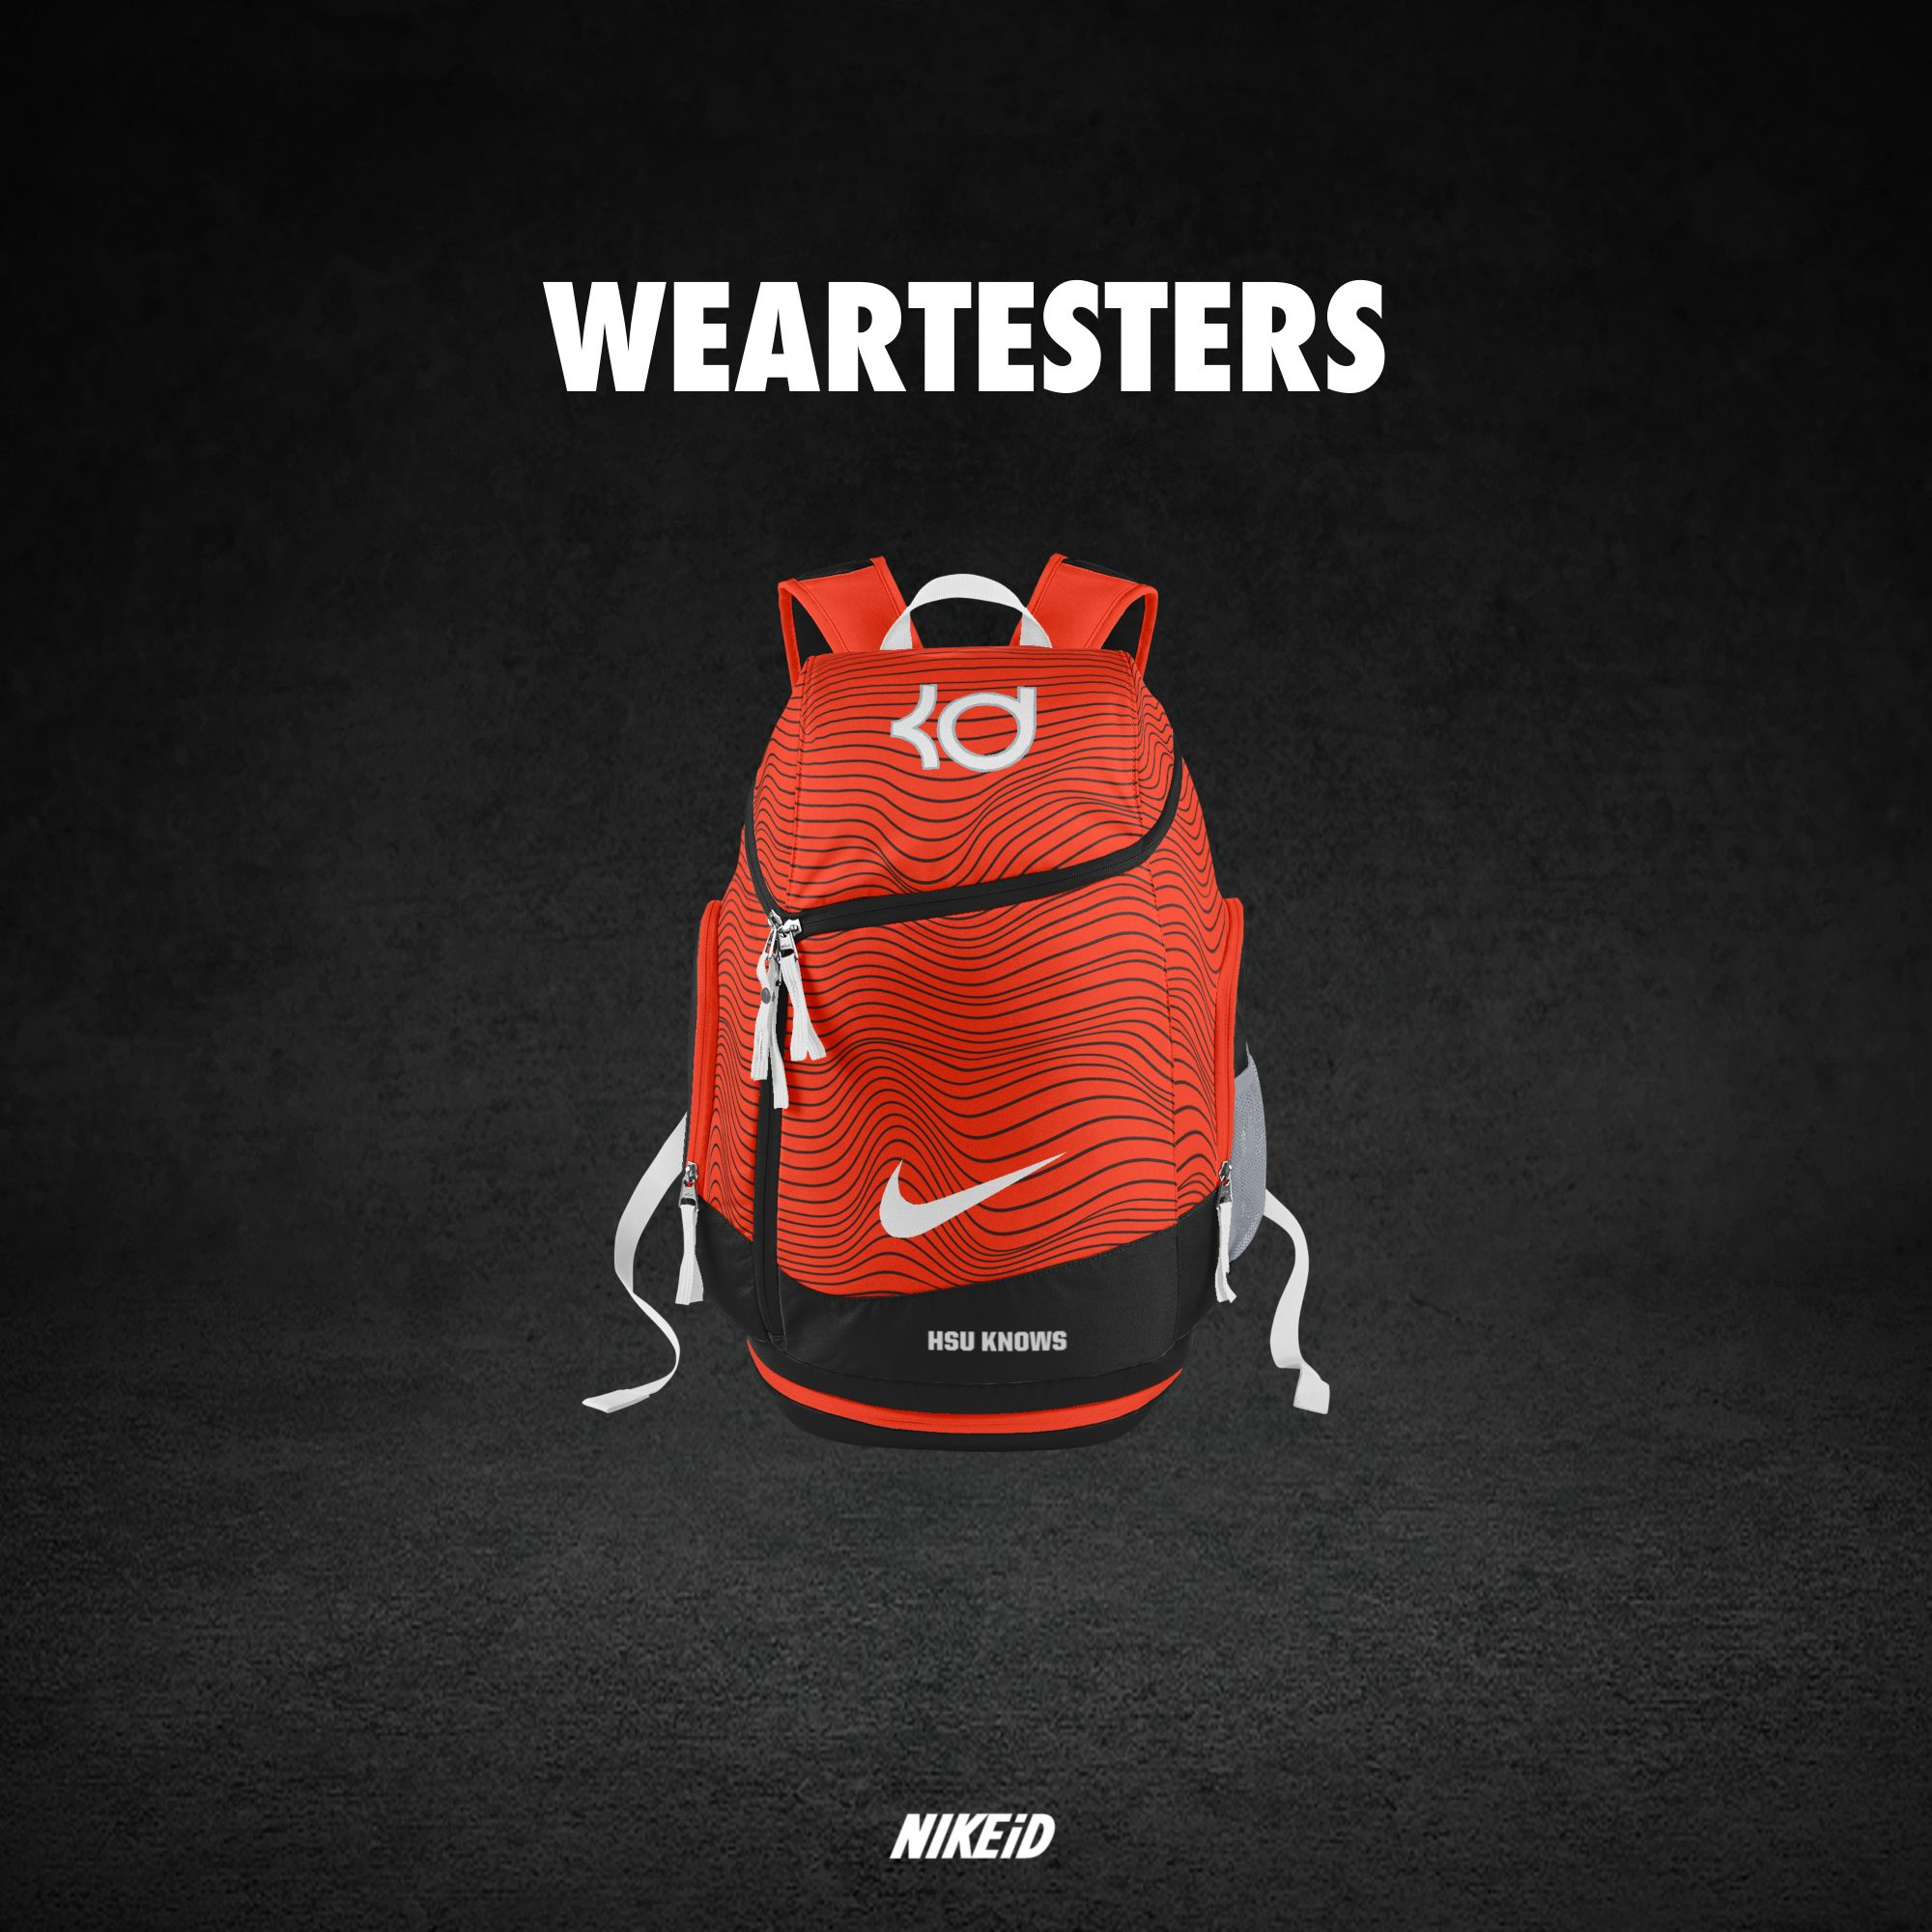 KD backpack1